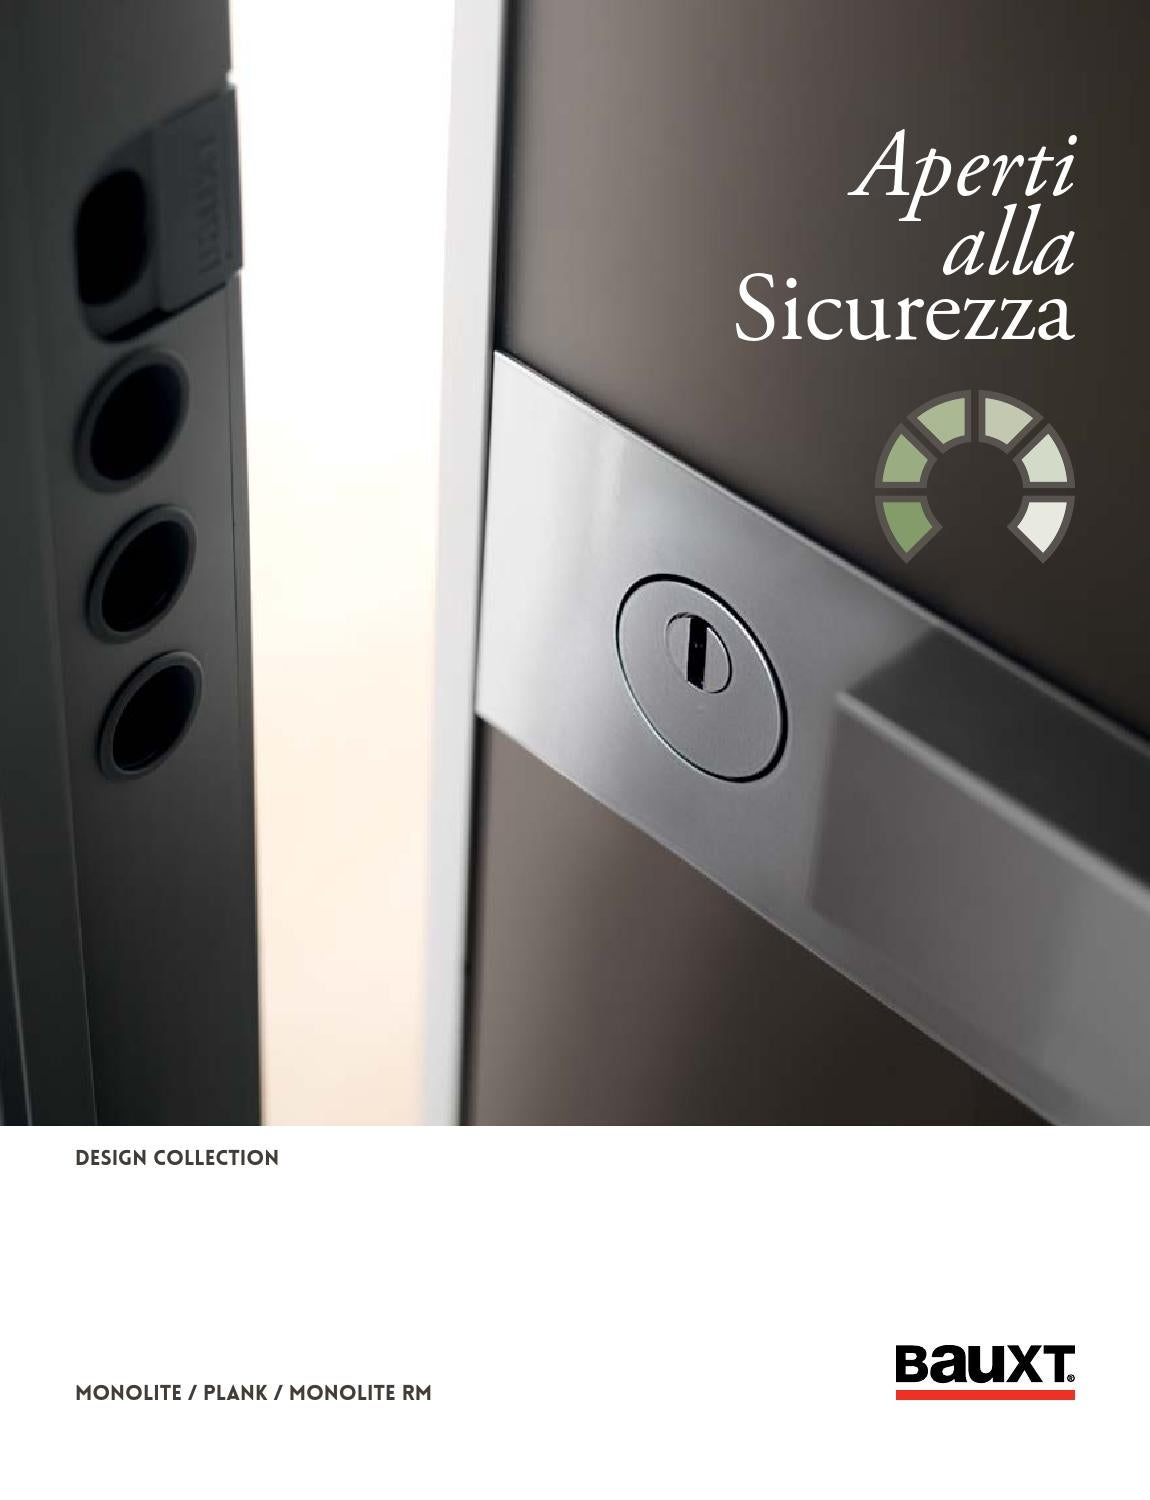 Bauxt Porte Blindate Bauxt Design Catalogue By Bauxt S P A Issuu